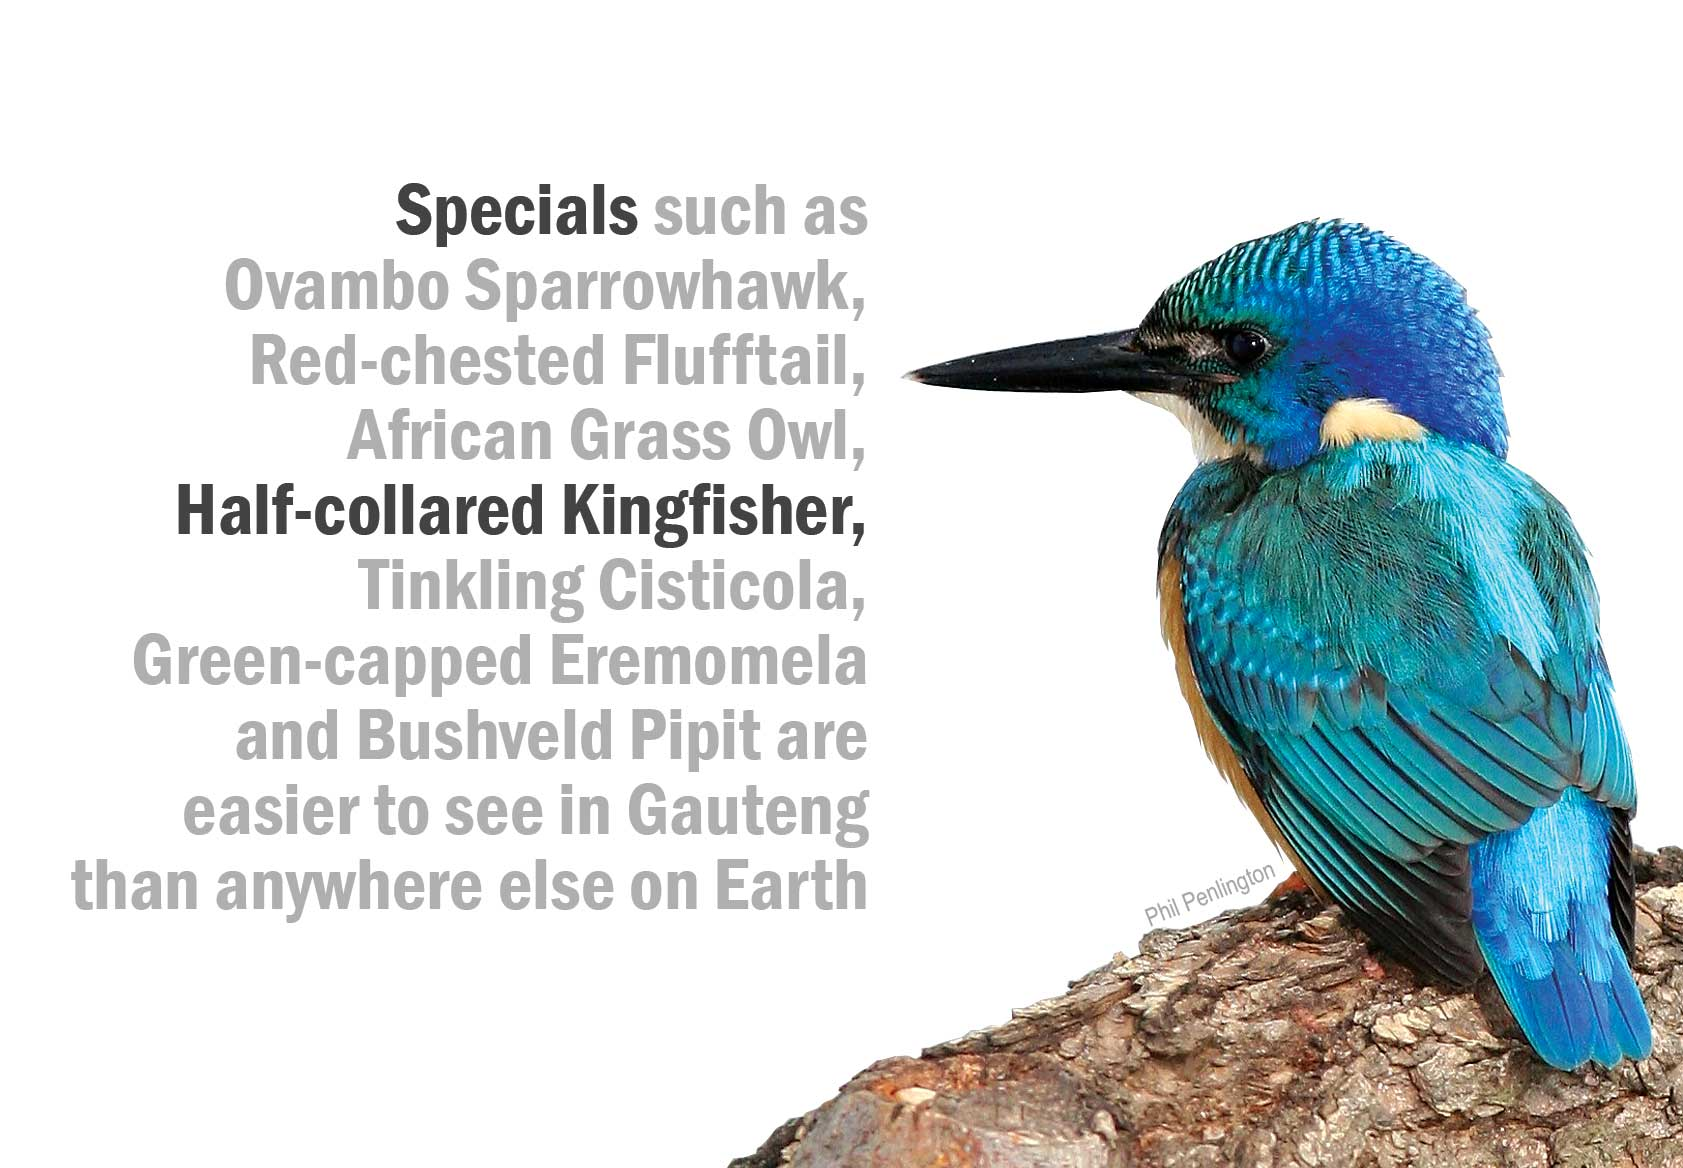 Half-collared Kingfisher (Phil Penlington)